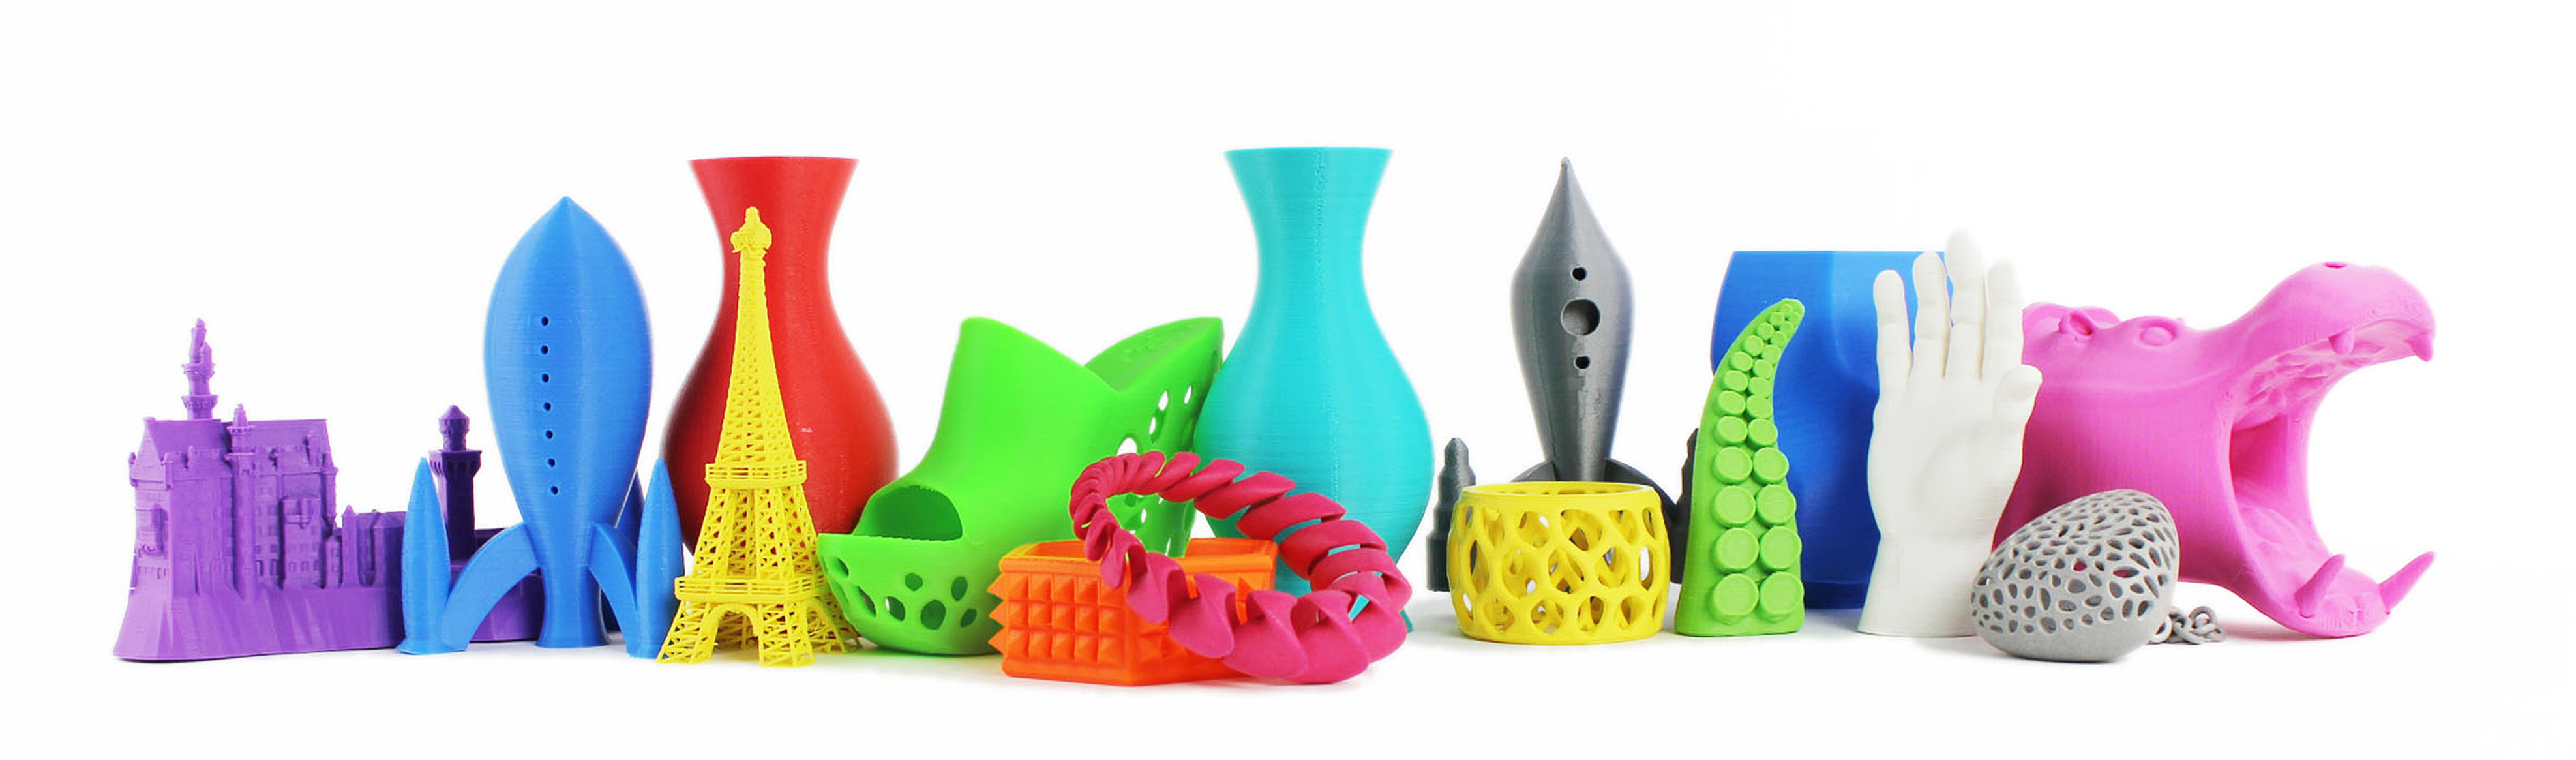 what does resolution mean for sla printers the ortho cosmos. Black Bedroom Furniture Sets. Home Design Ideas